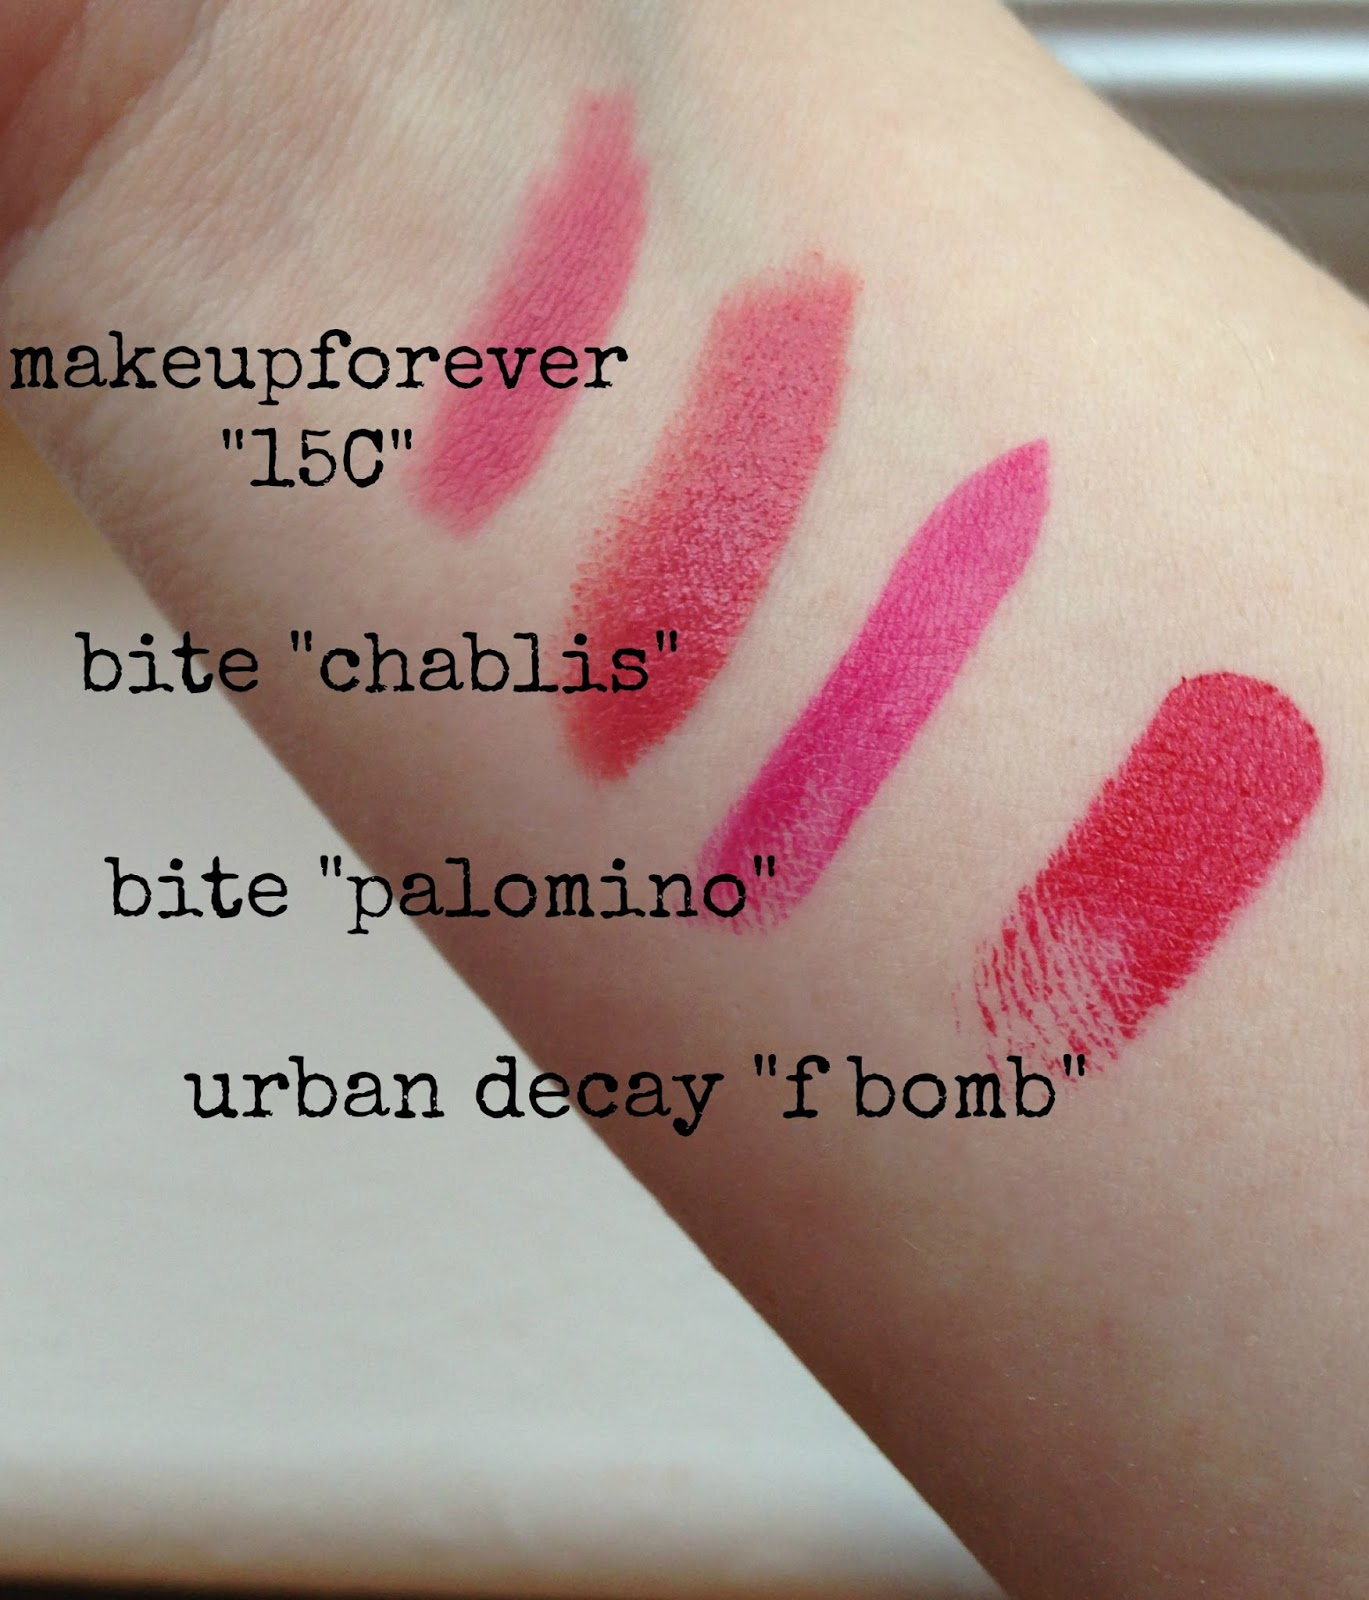 makeup forever 15C review bite chablis review bite palomino review urban decay f bomb review